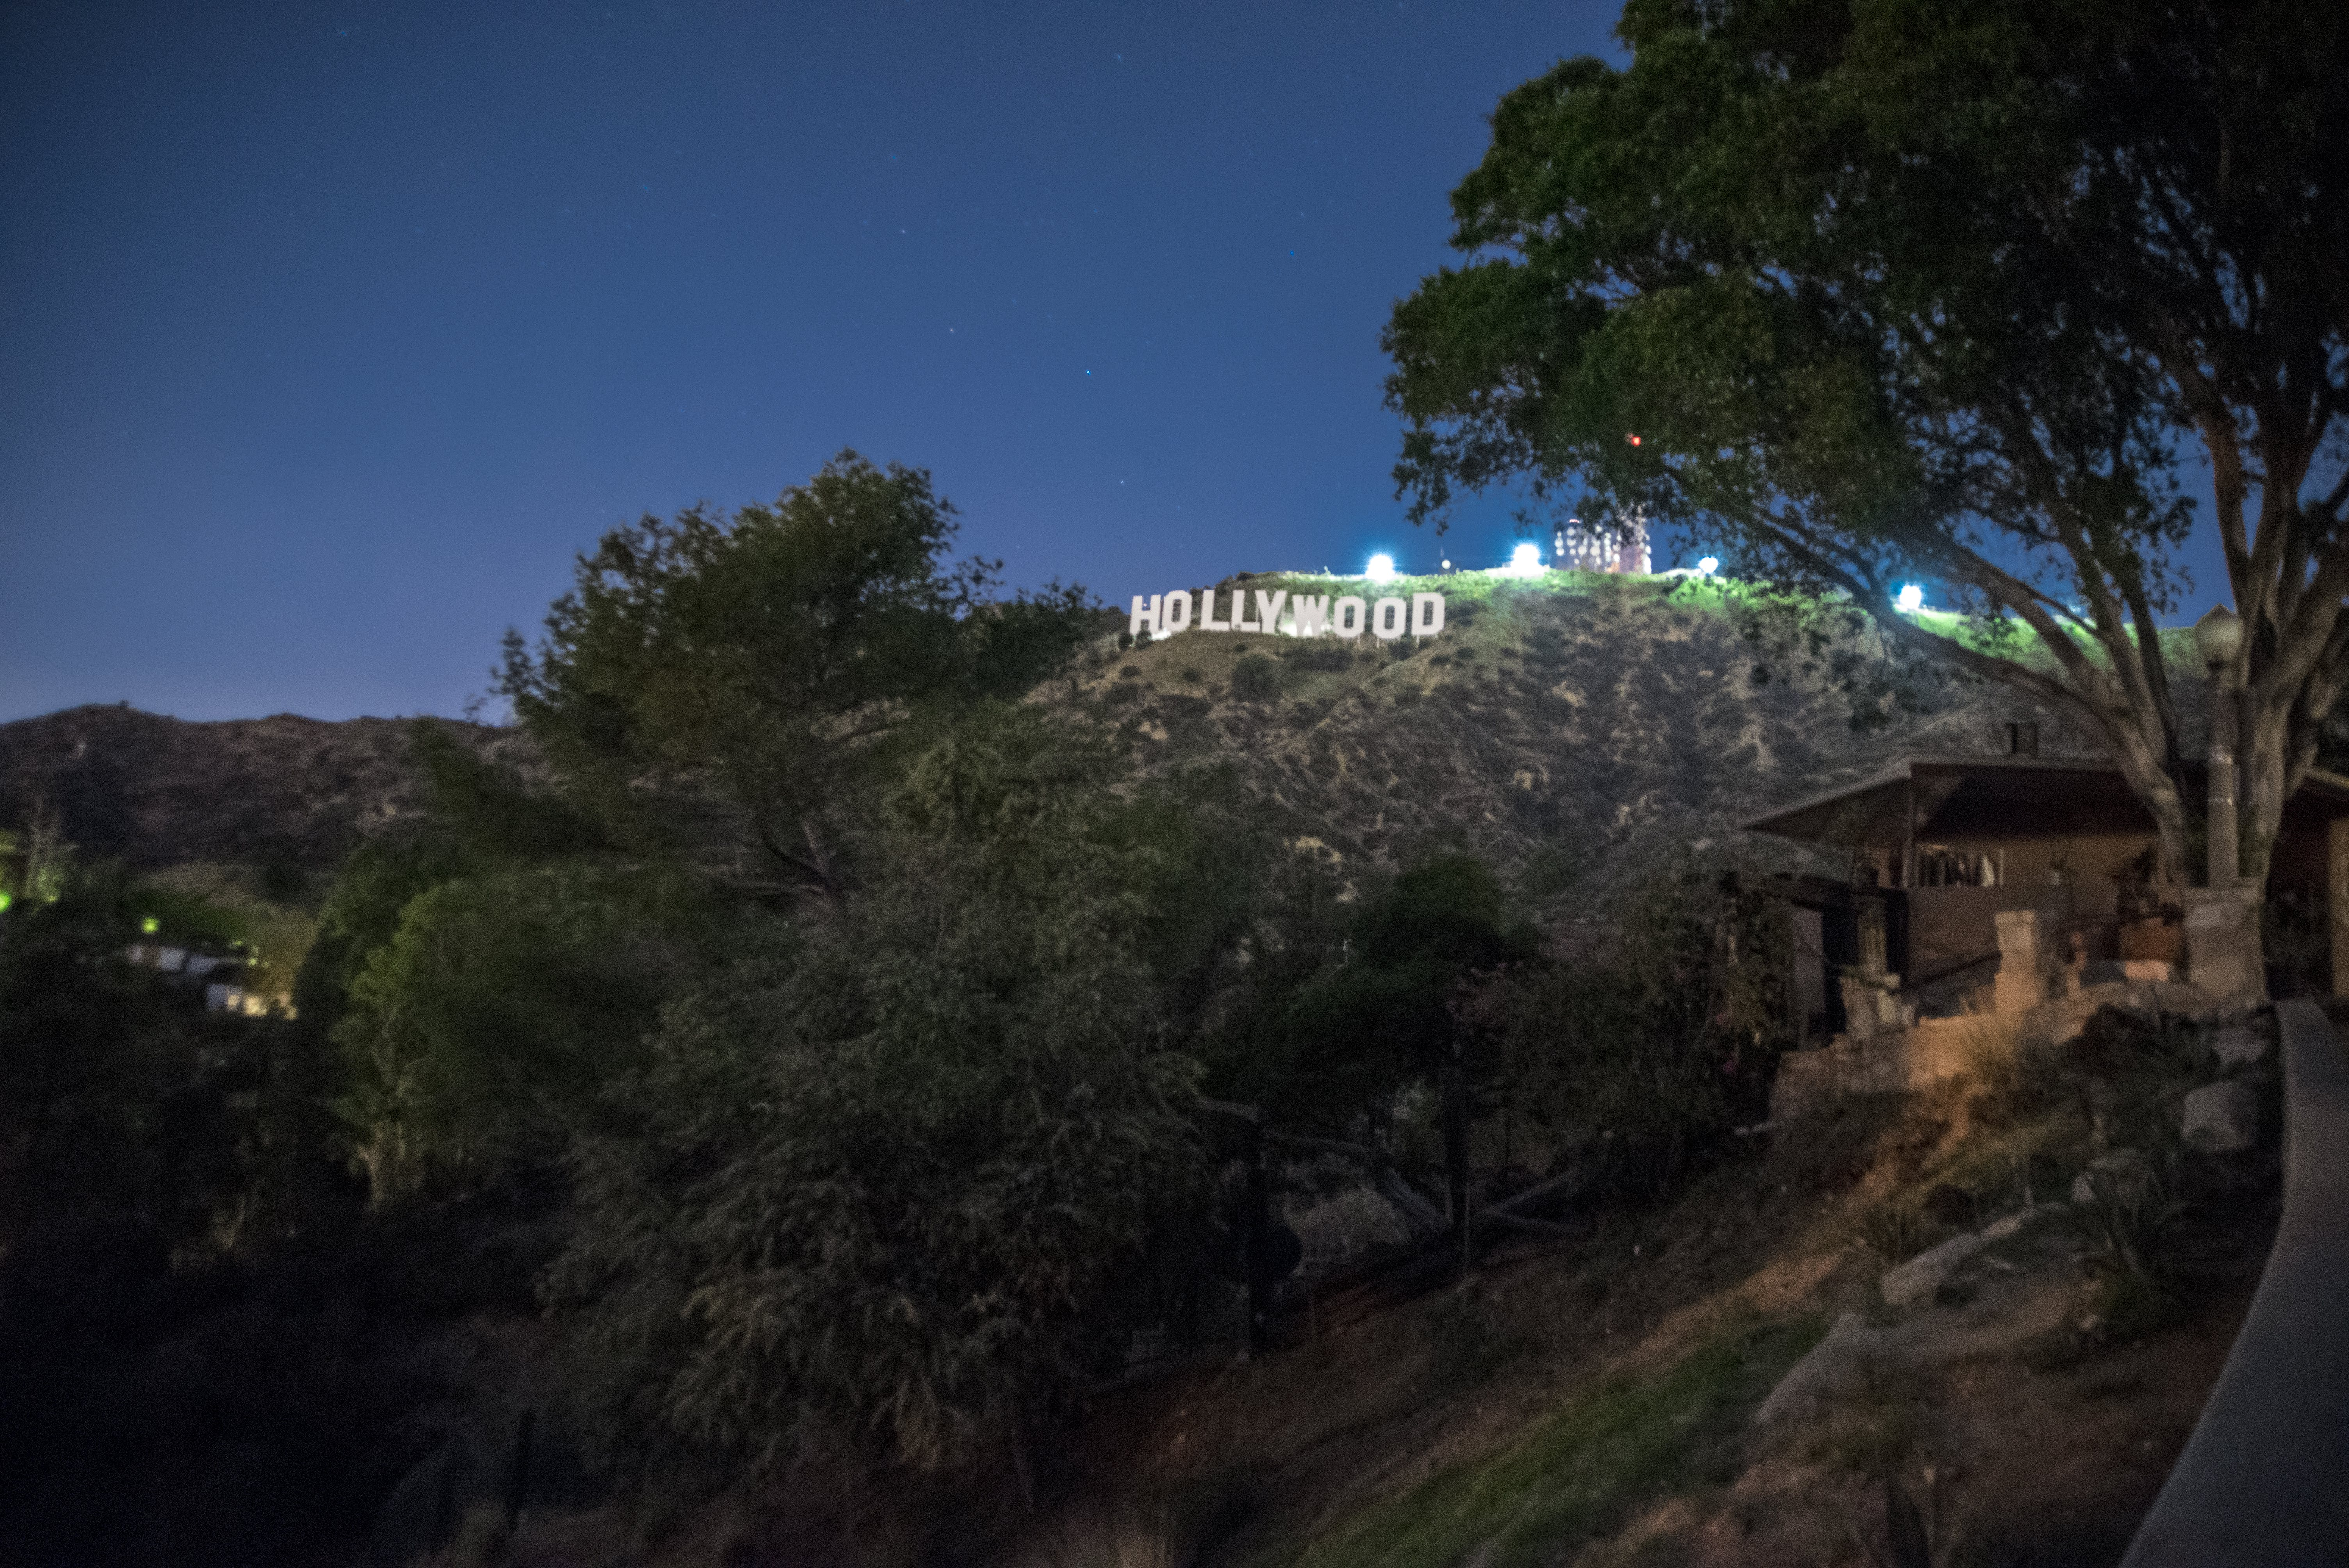 Free stock photo of Hollywood night, hollywood sign, Hollywood Sign night